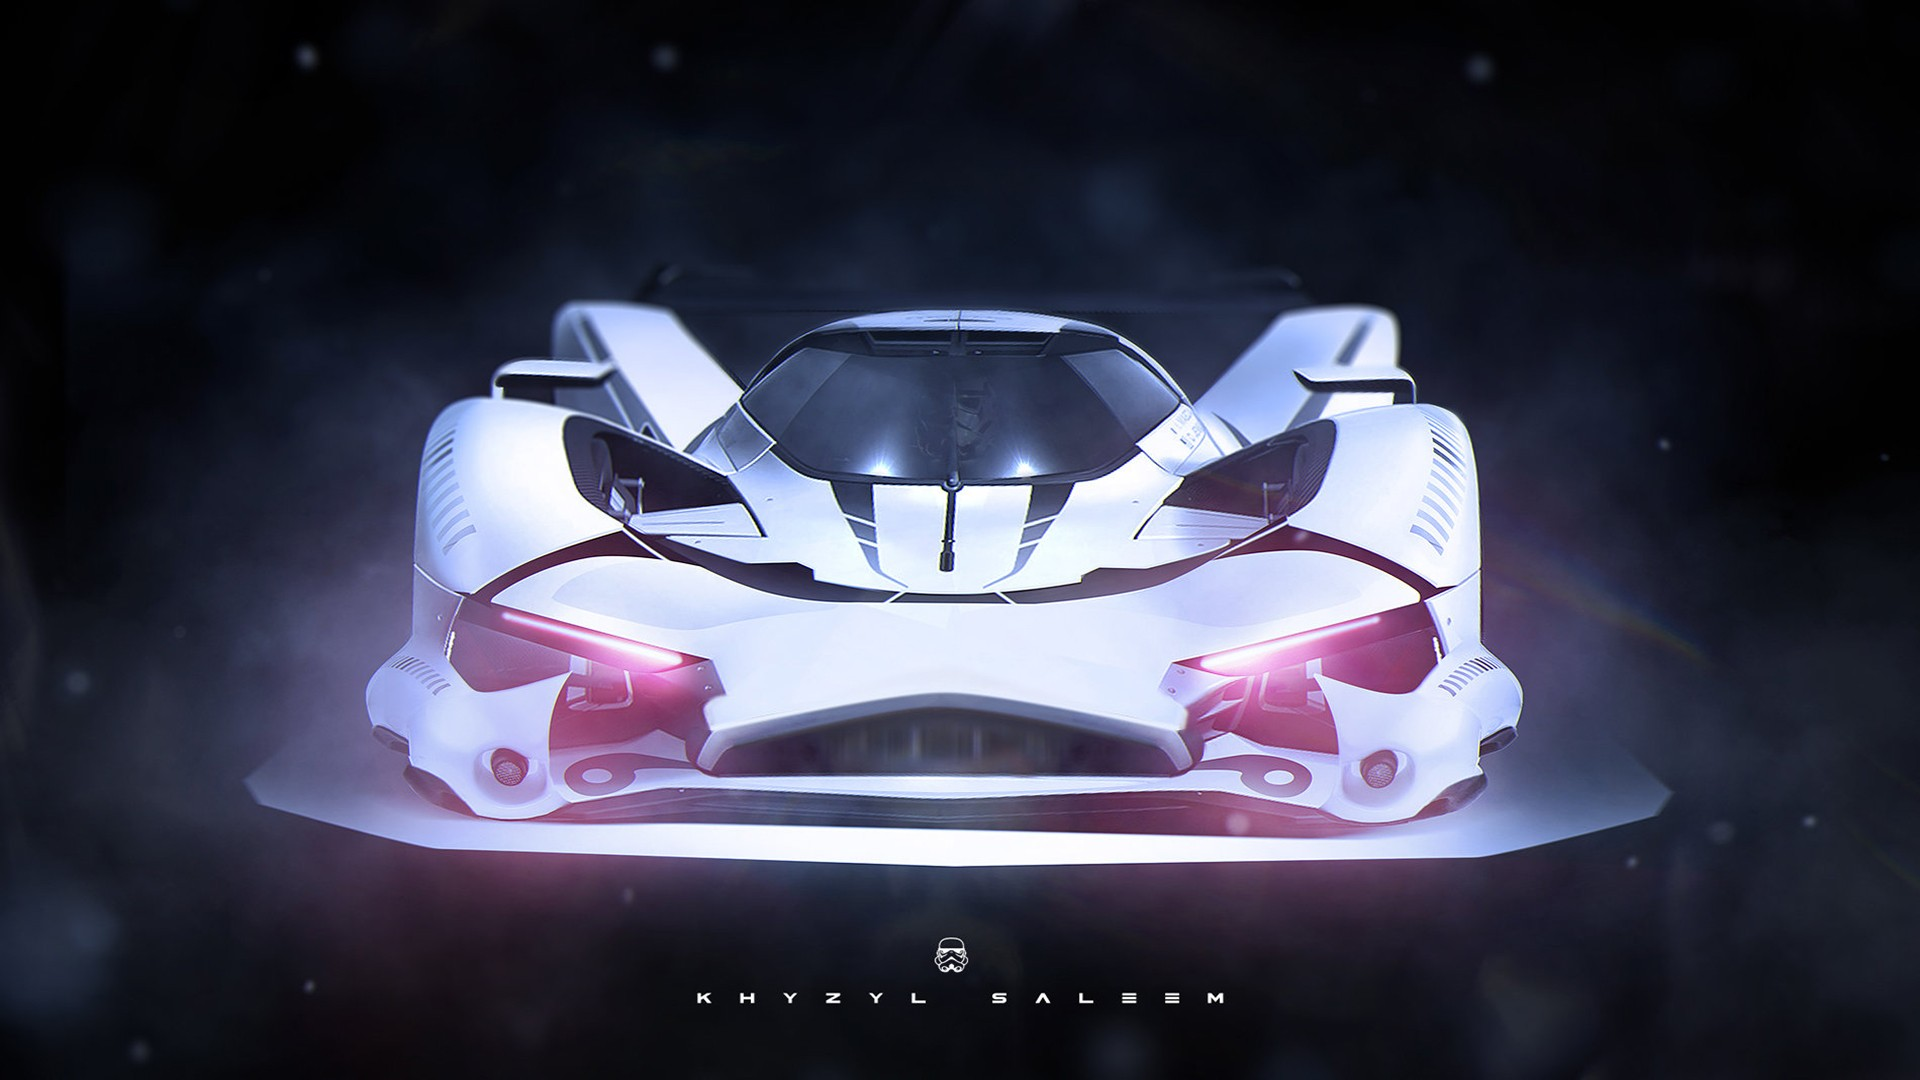 Desktop 3d Super Hd Wallpapers Artwork Digital Art Supercars Stormtrooper Star Wars